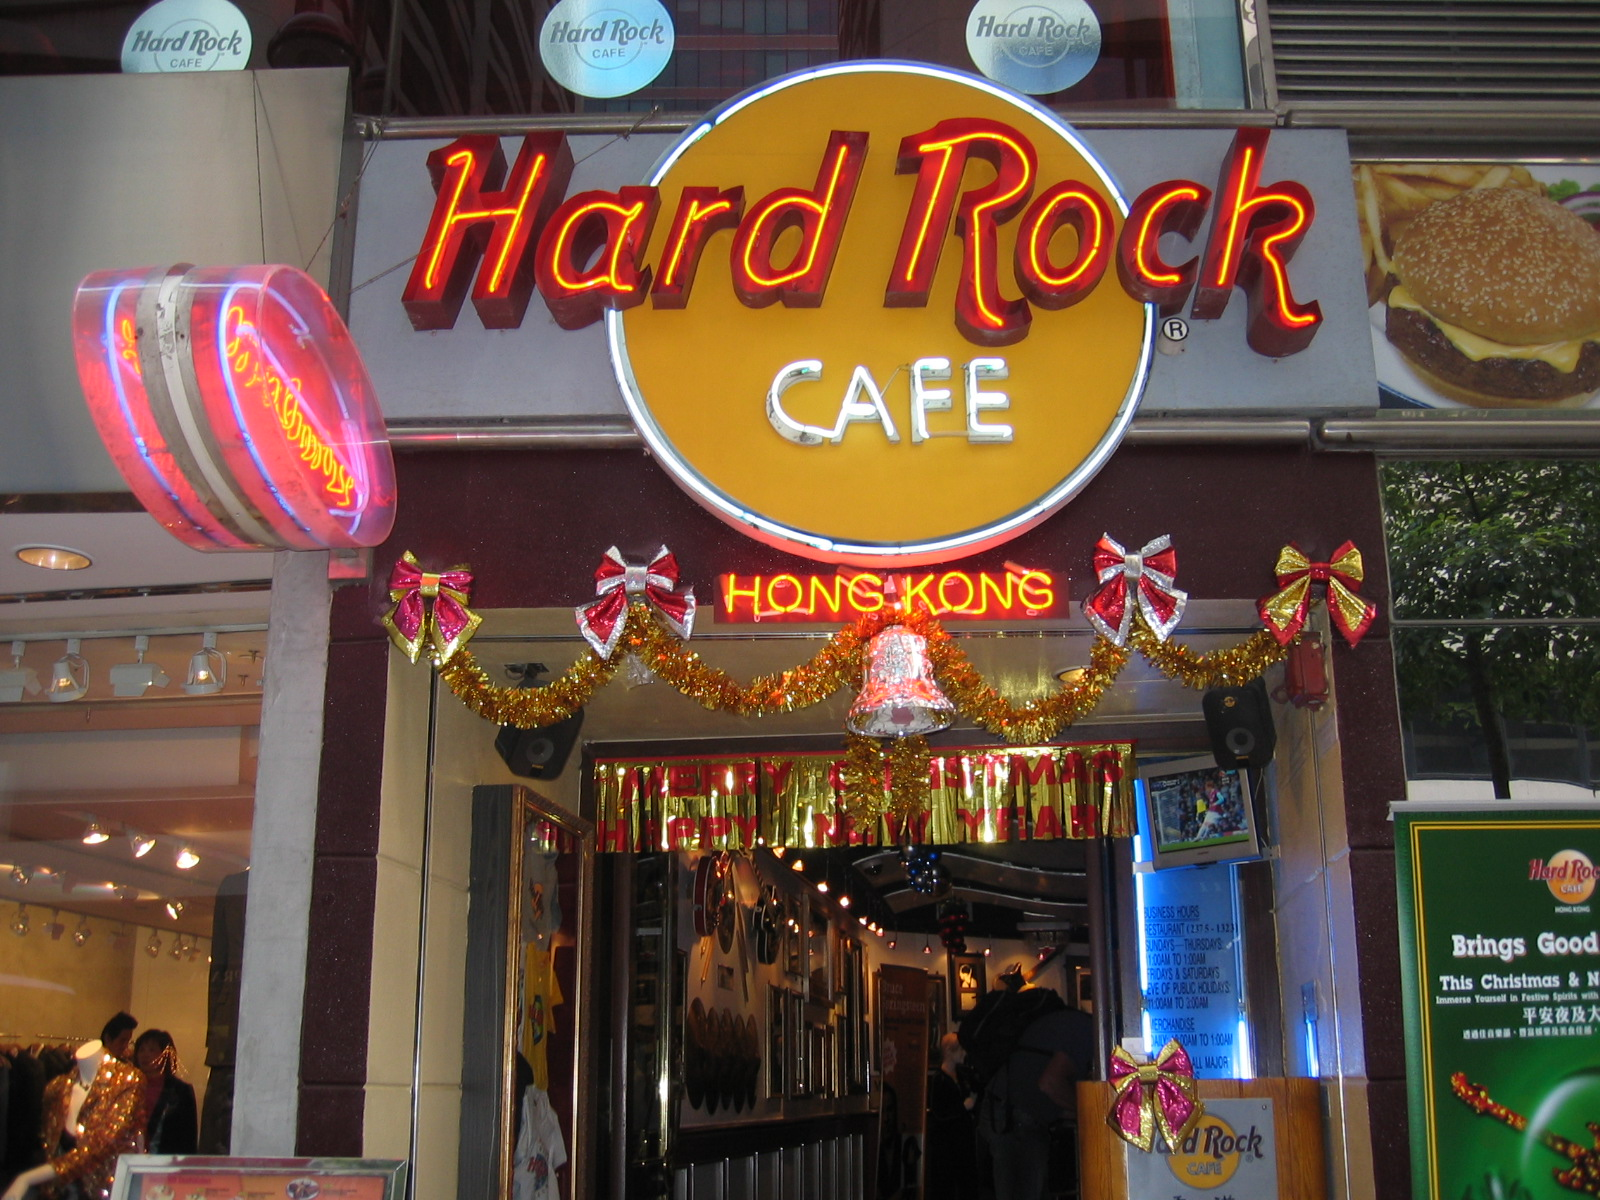 Hard Rock Cafe  Ef Bf Bdv Ef Bf Bdnements  Ef Bf Bd Venir